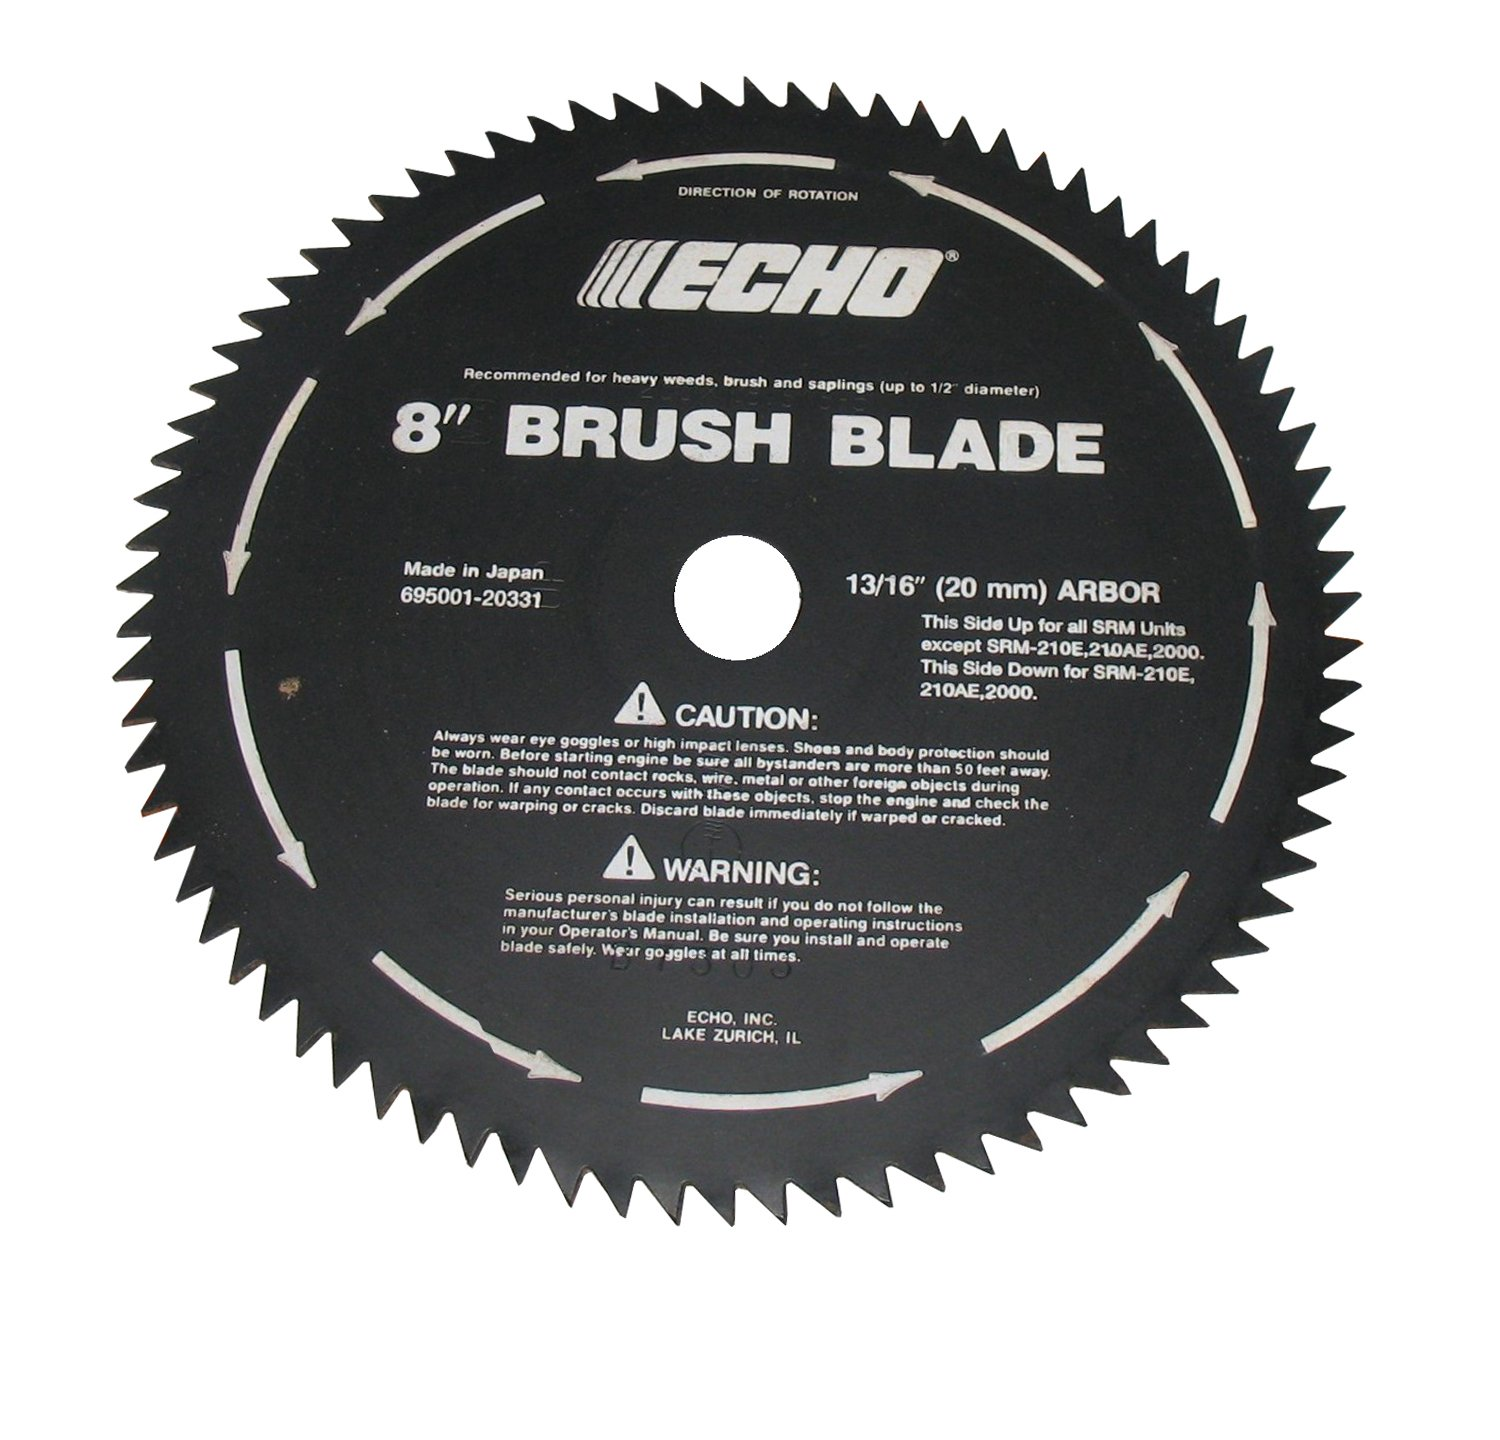 Amazon echo 69500120331 80 tooth brush blade circular saw amazon echo 69500120331 80 tooth brush blade circular saw blades garden outdoor greentooth Images